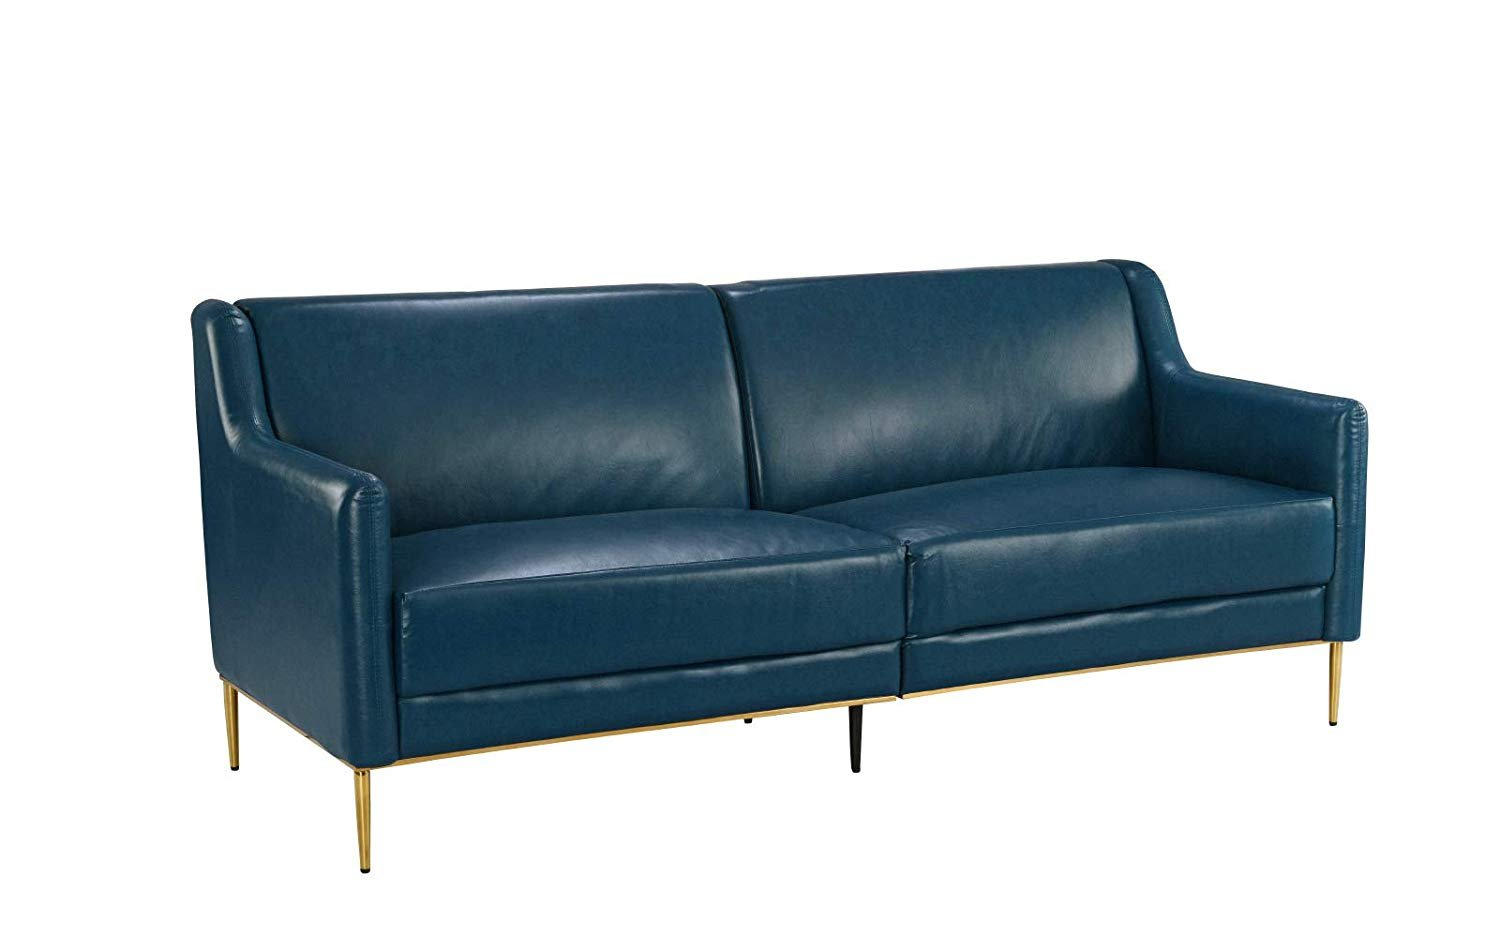 Mid Century Leather Sofa Sleek Simple Modern Living Room Couch